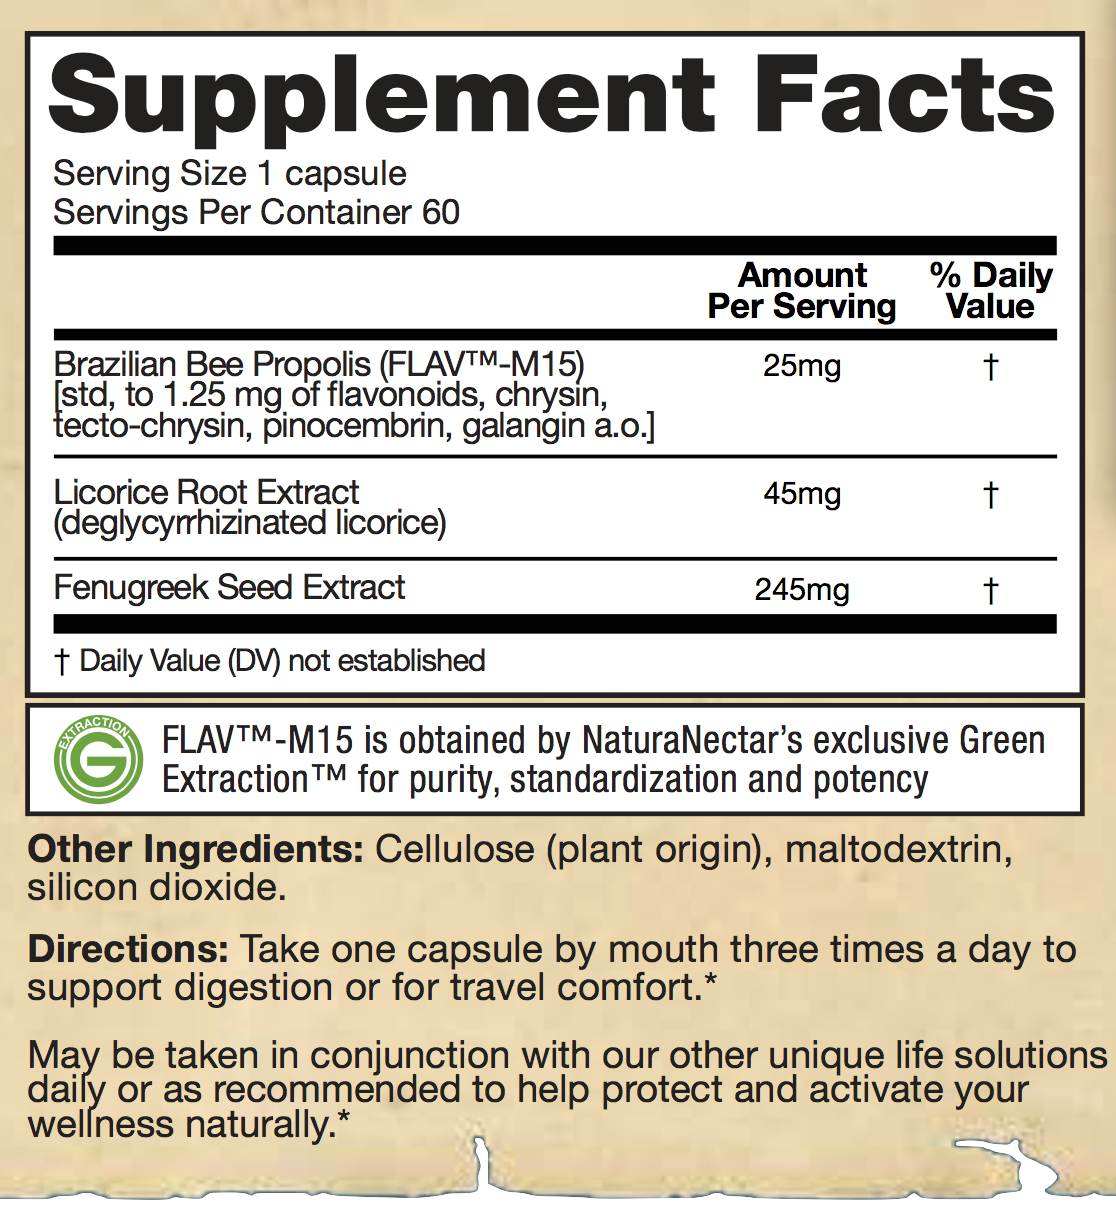 nn-gastro-guardian-supplement-facts-cropped.png